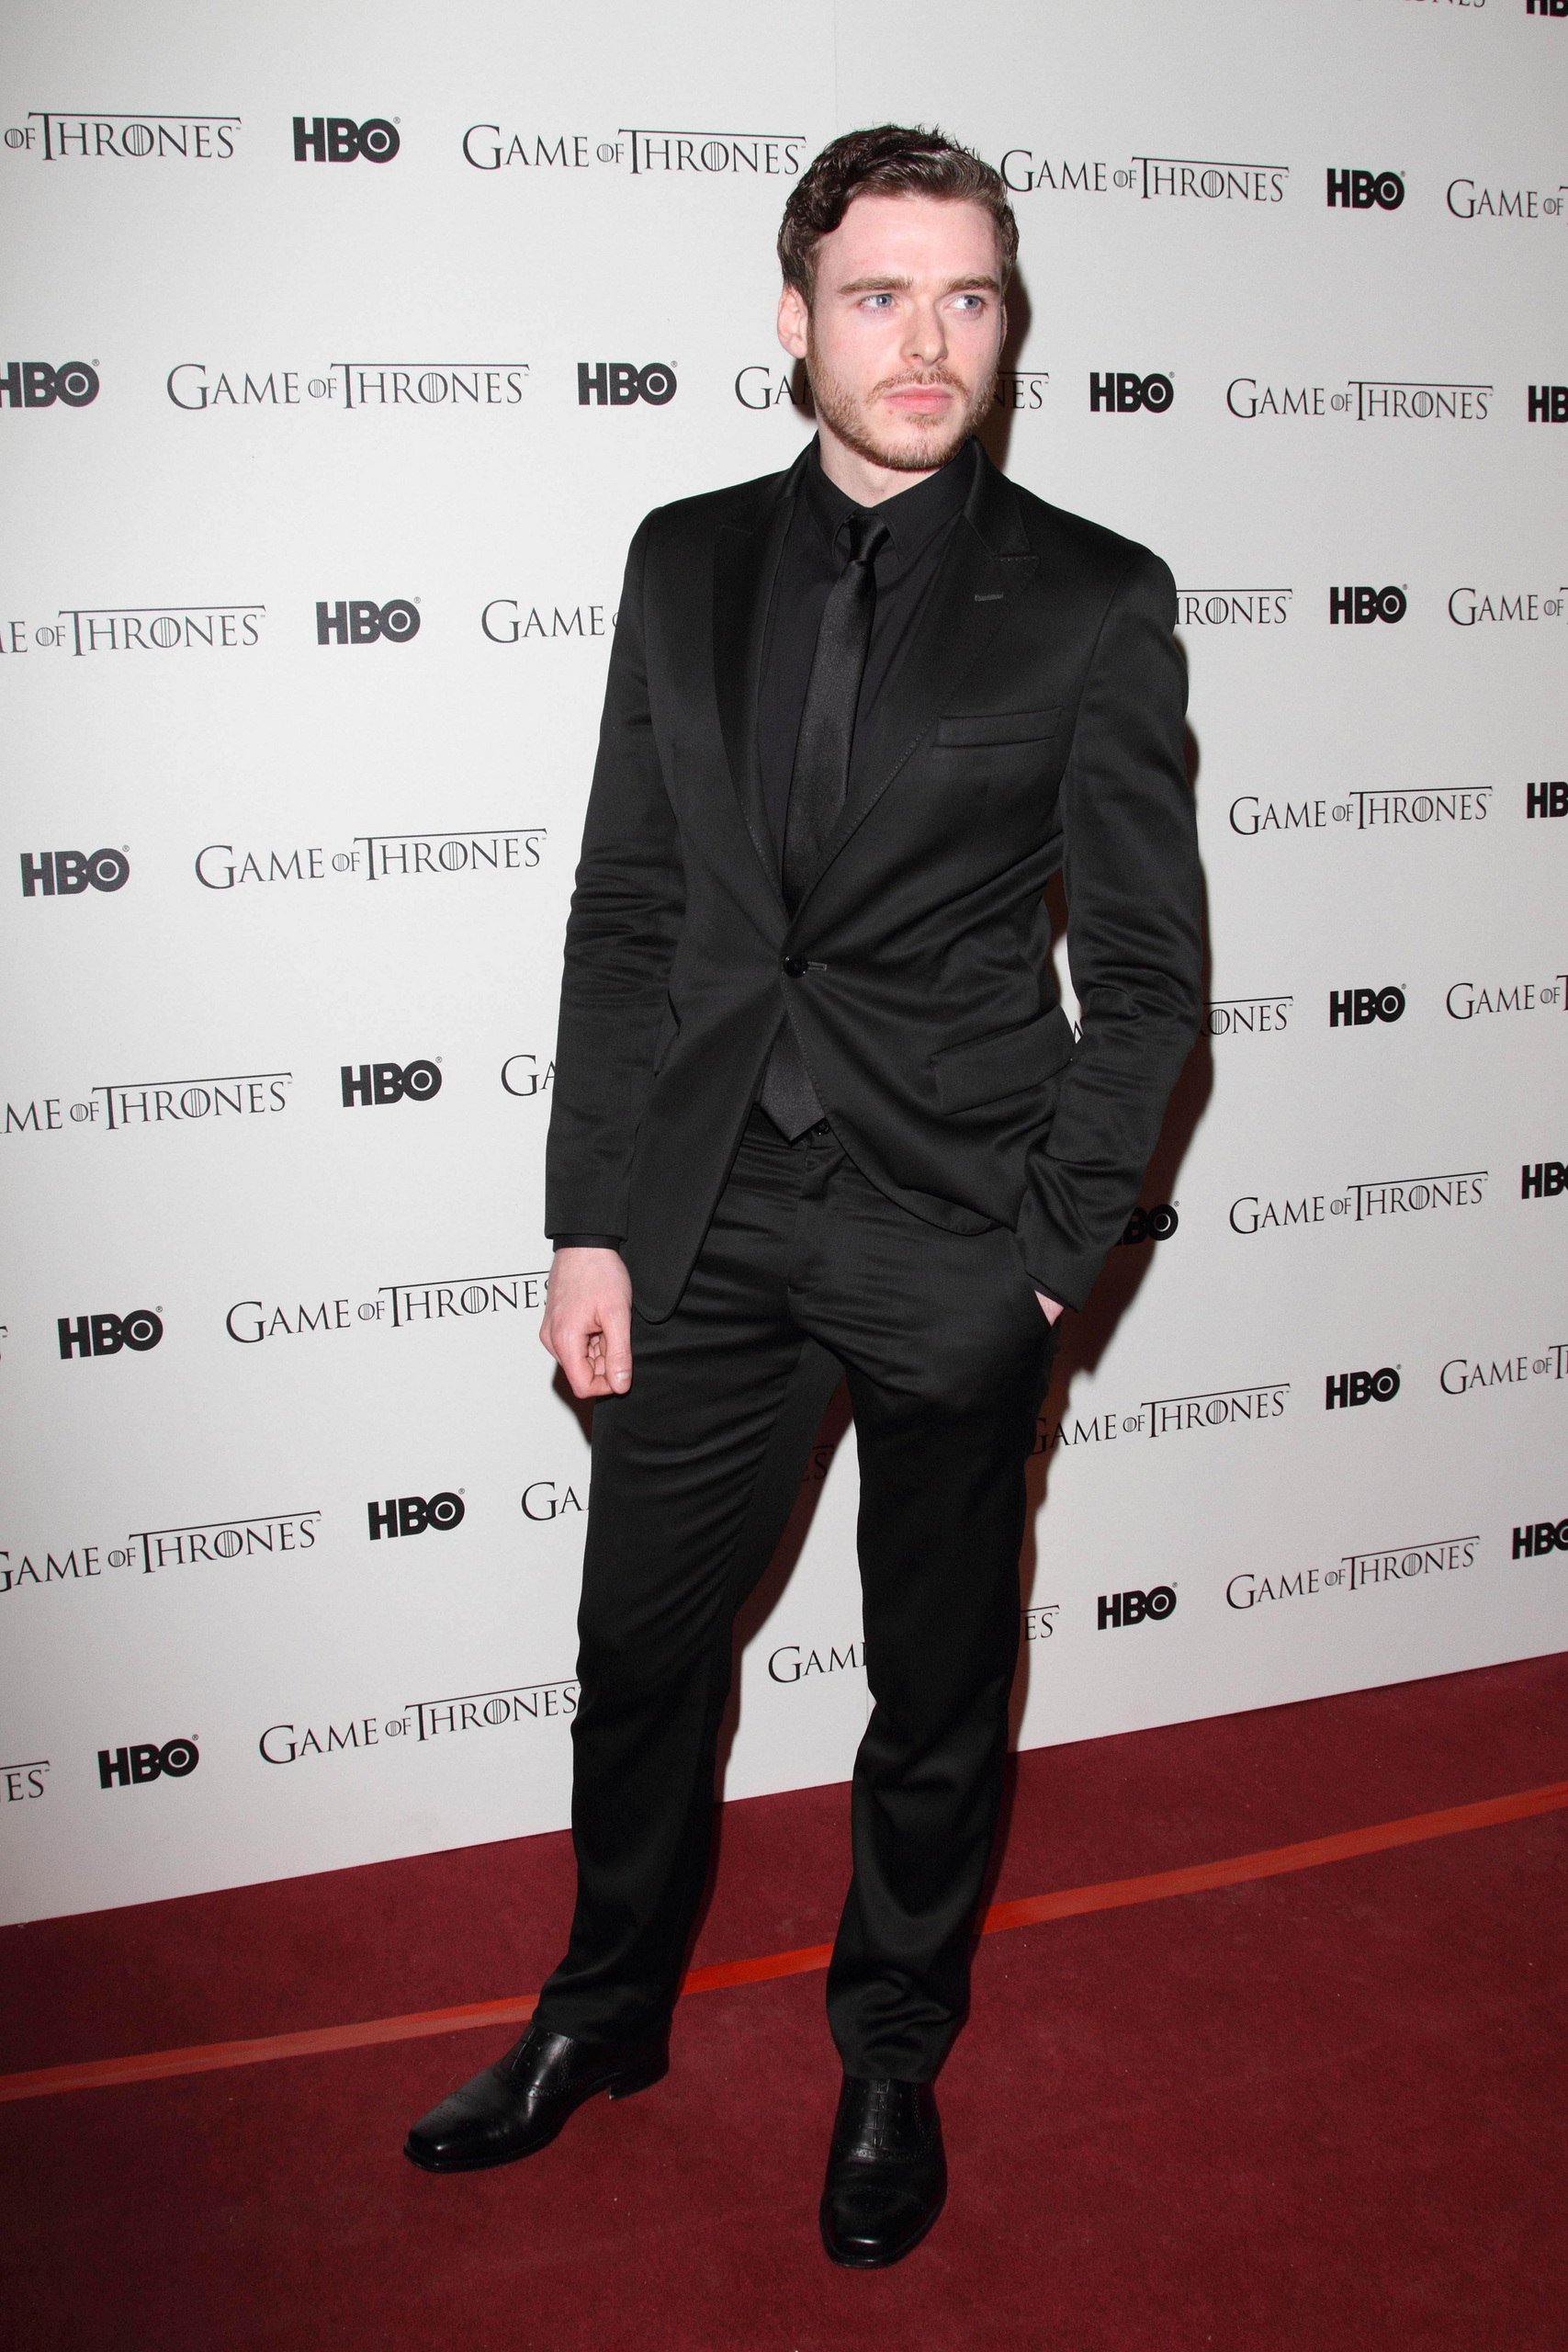 Game of Thrones Season 1 DVD Release Party - February 29, 2012